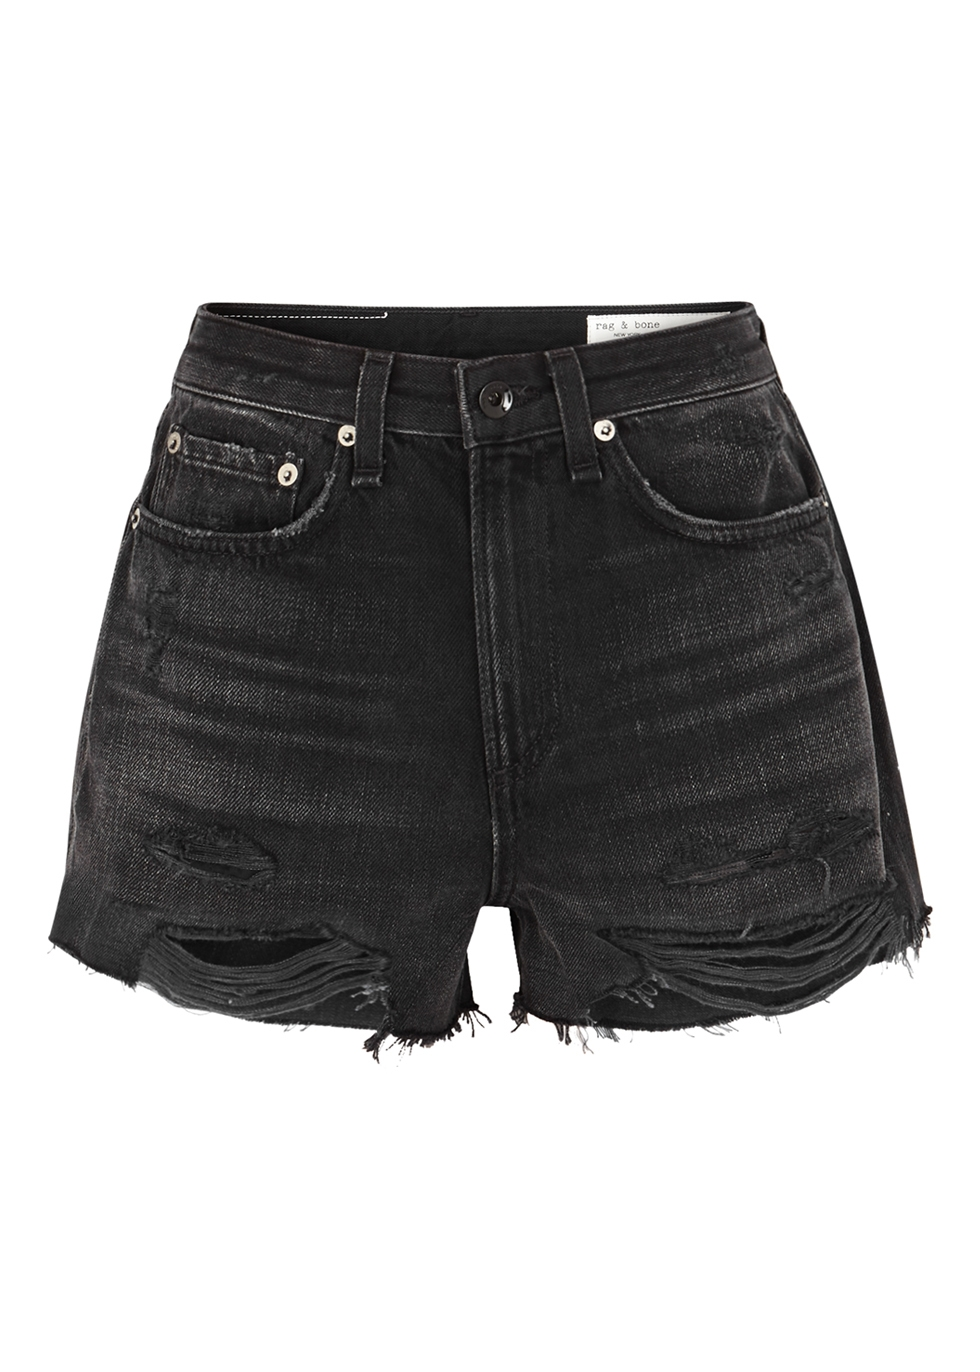 Justine black denim shorts - rag & bone /JEAN